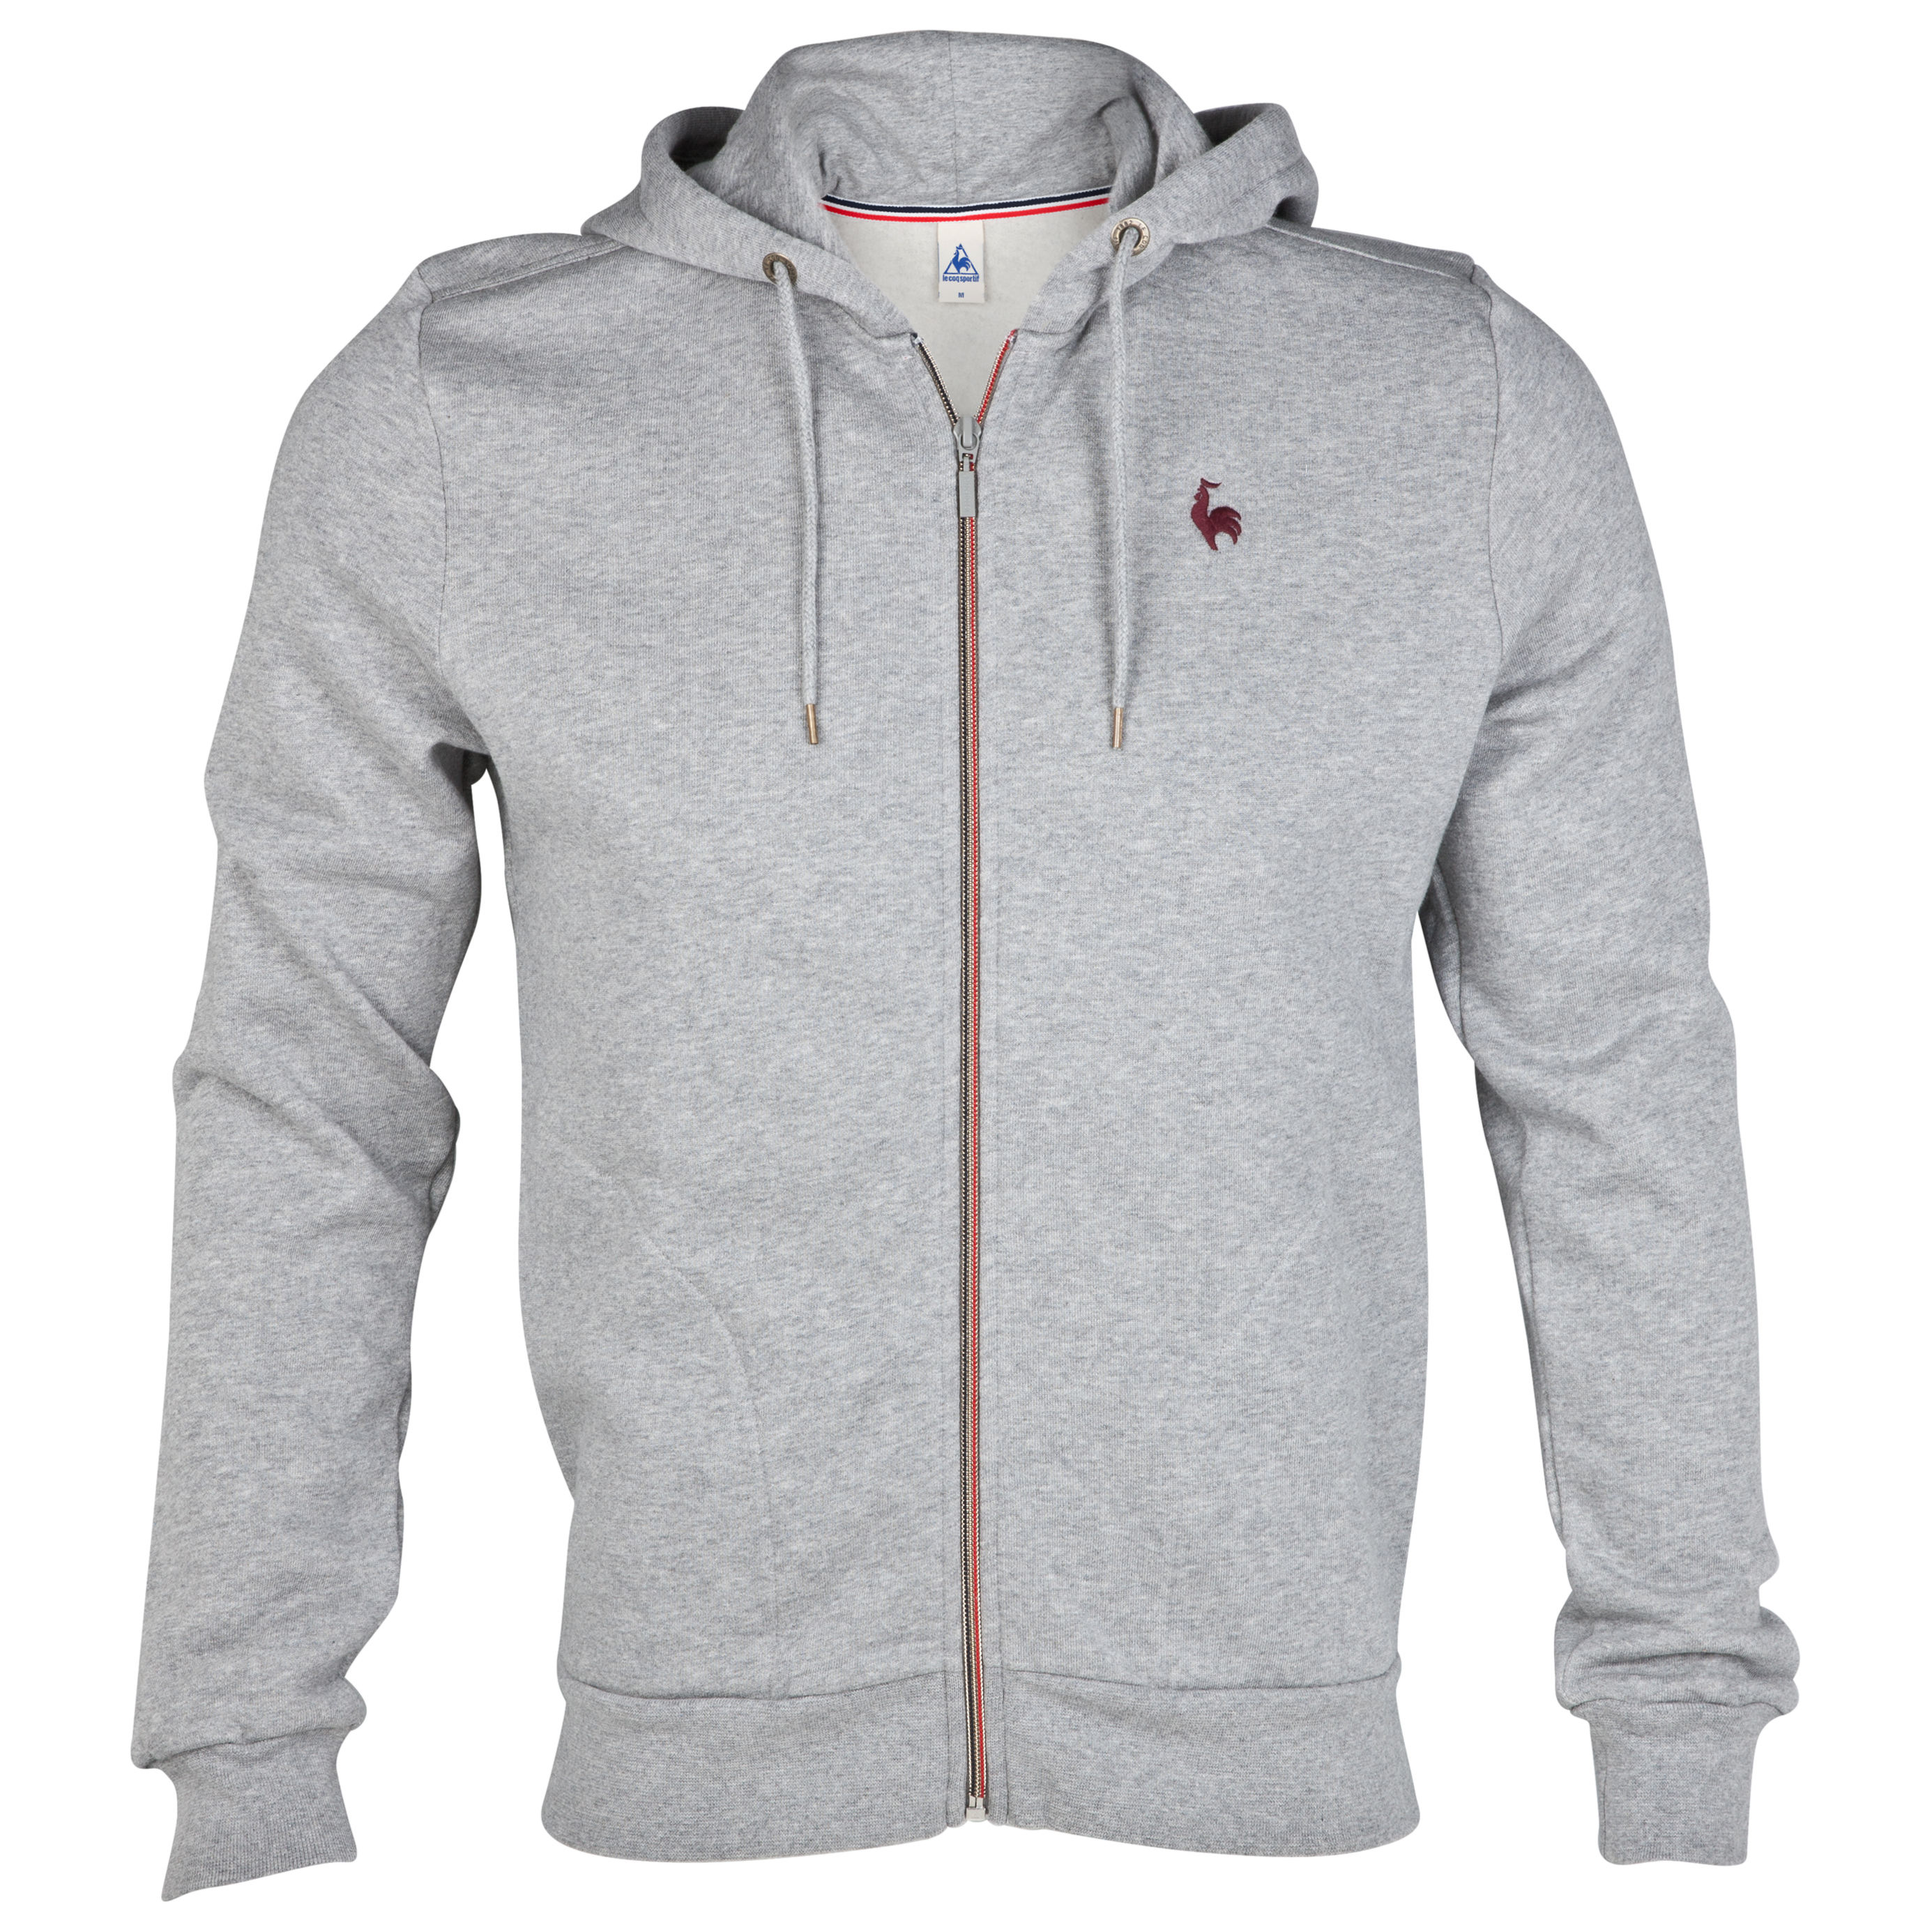 Le Coq Sportif Full Zip Hooded Sweatshirt - Light Heather Grey